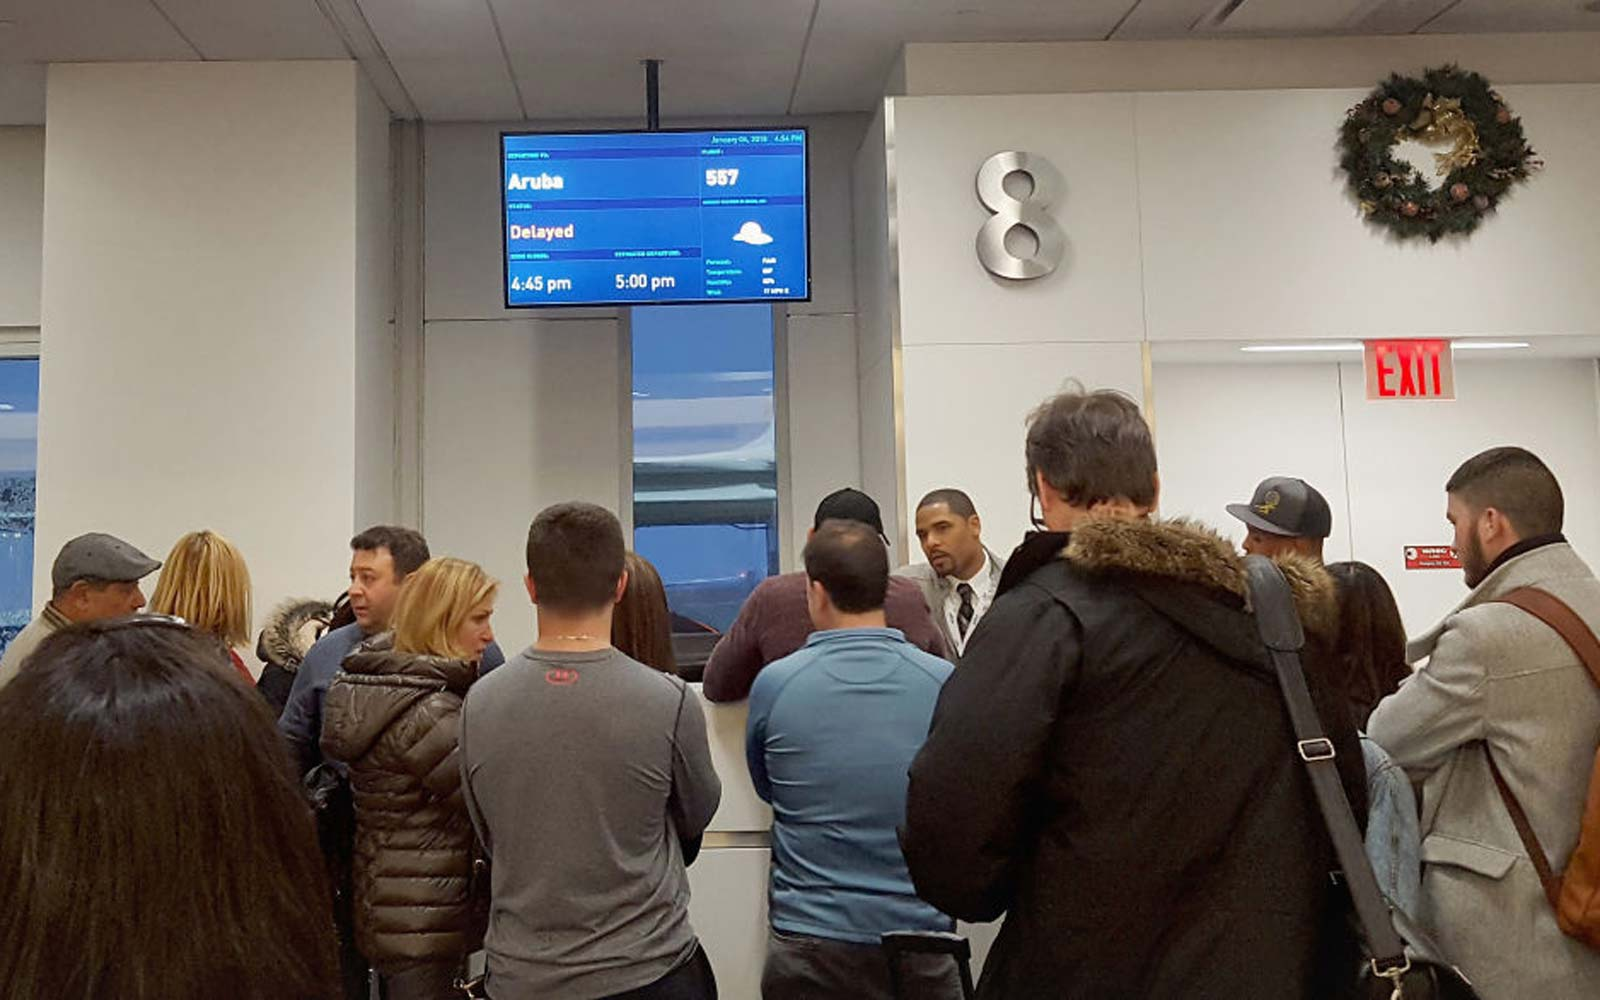 Passengers wait for their delayed flights at gate 8 in terminal five at John F. Kennedy International Airport